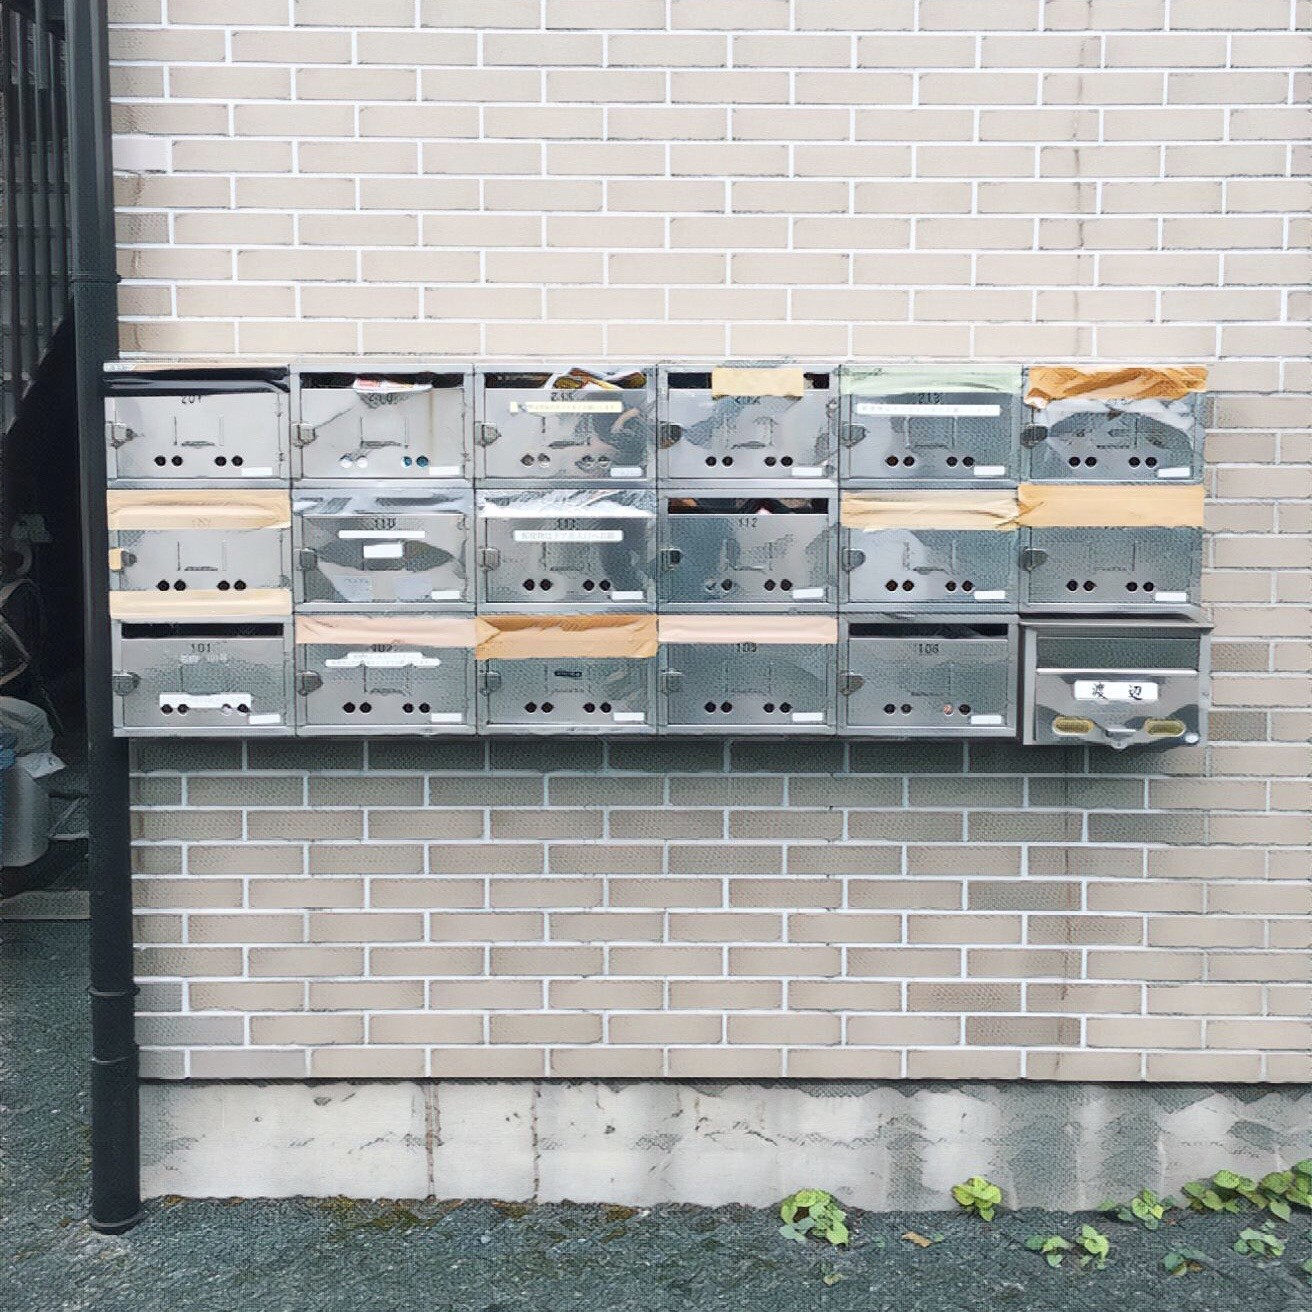 Mailboxes outside apartment complex.